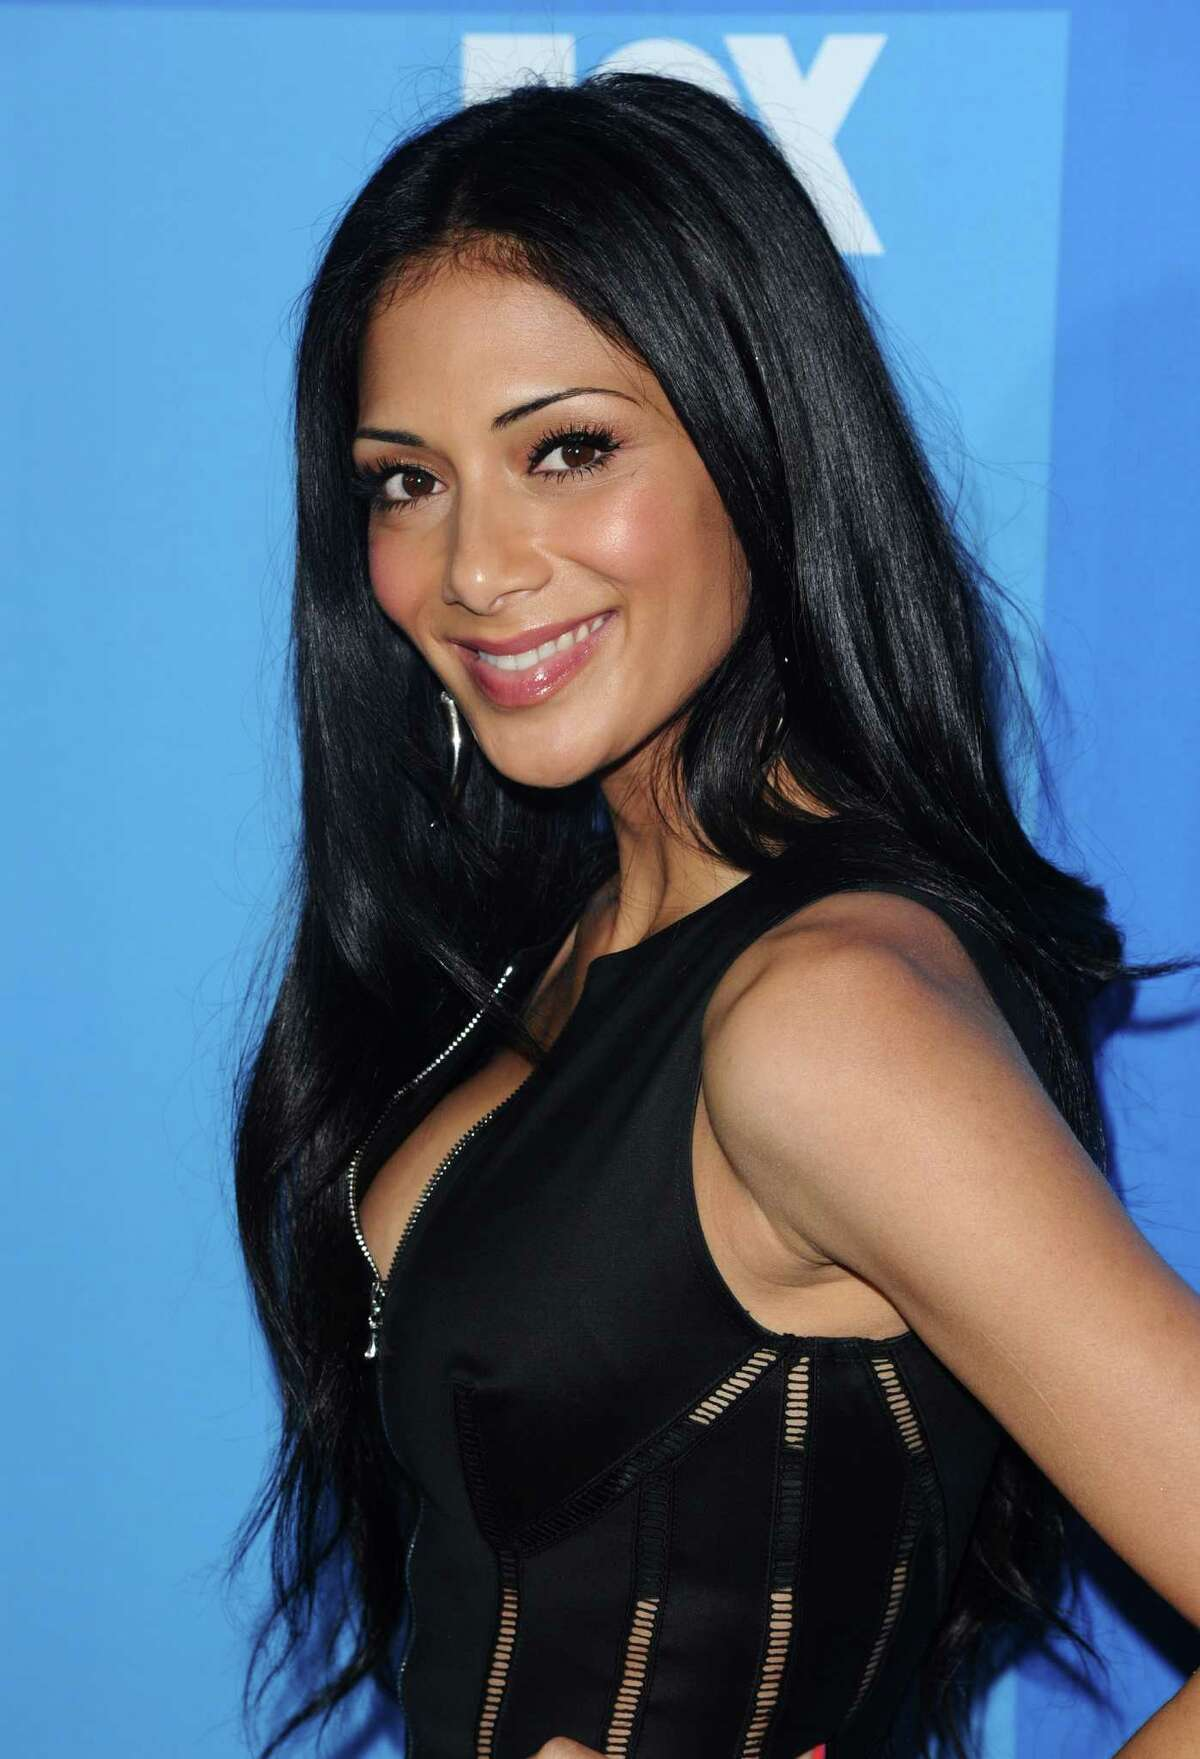 FILE - In this May 16, 2011 file photo, singer Nicole Scherzinger attends the 2011 Fox Upfront party in New York. Fox confirmed Monday, June 6, 2011 that Scherzinger will replace Cheryl Cole as a judge on the talent competition series